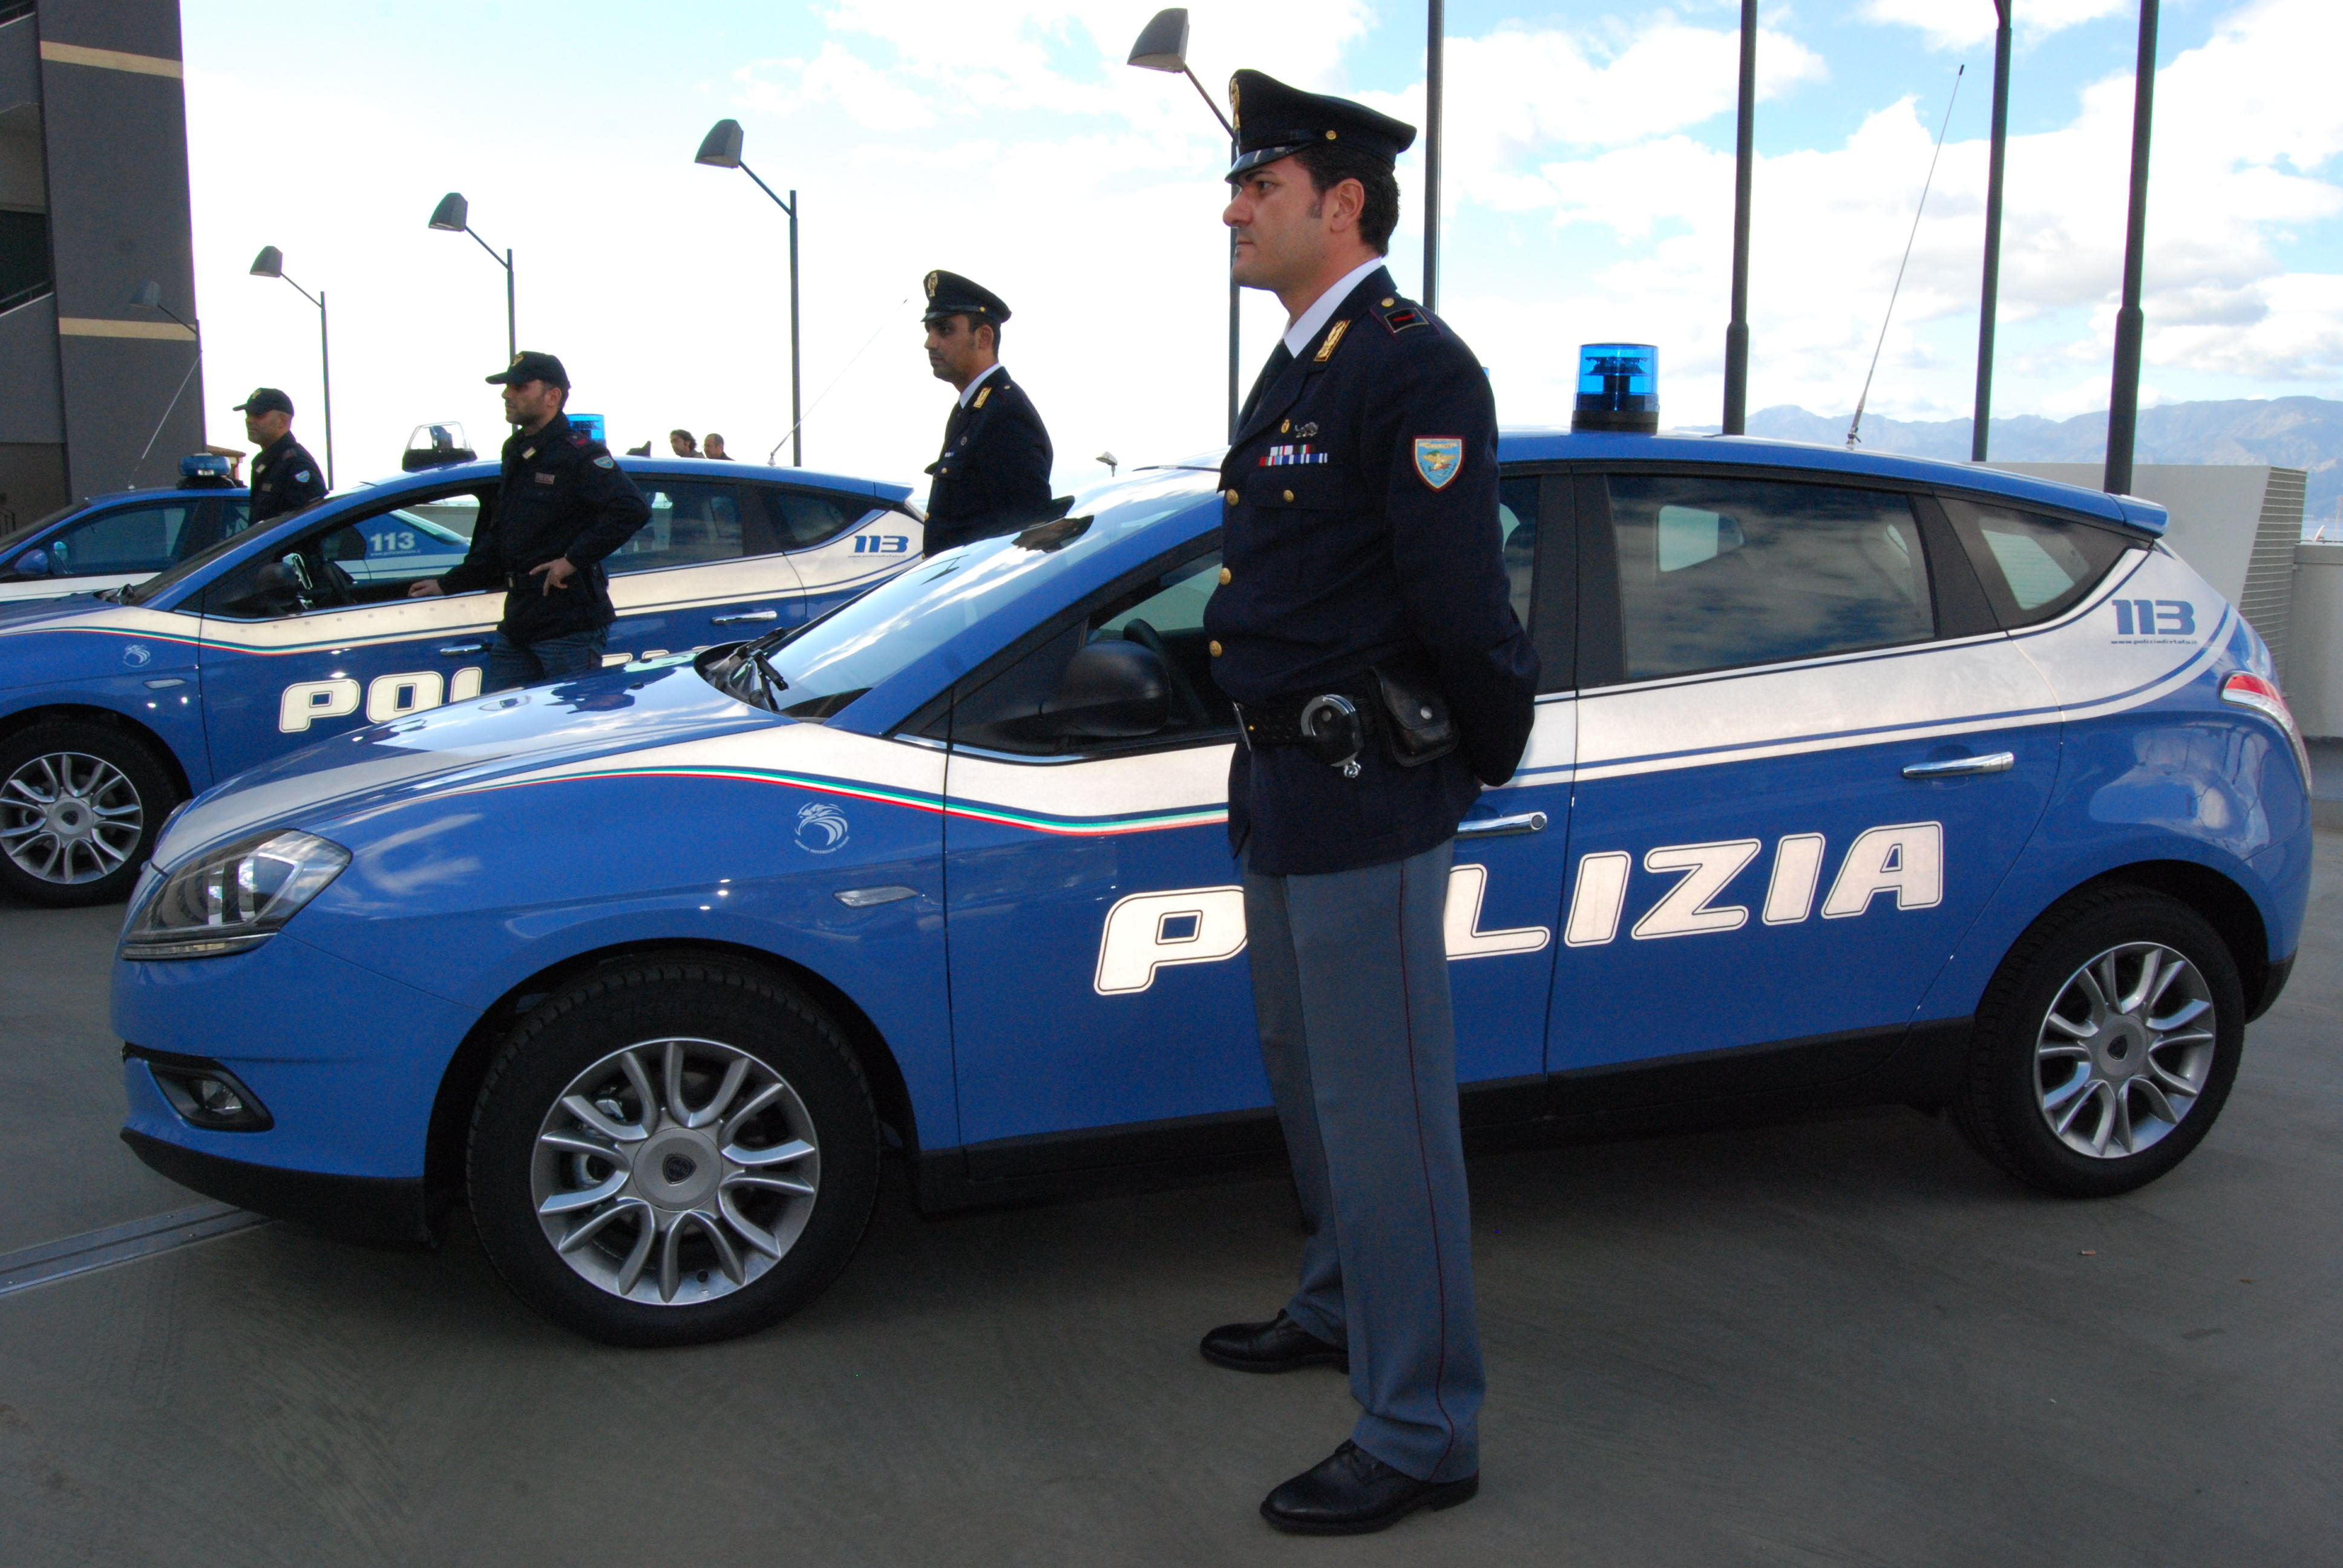 Polizia the stato for Prova dello specchio polizia youtube